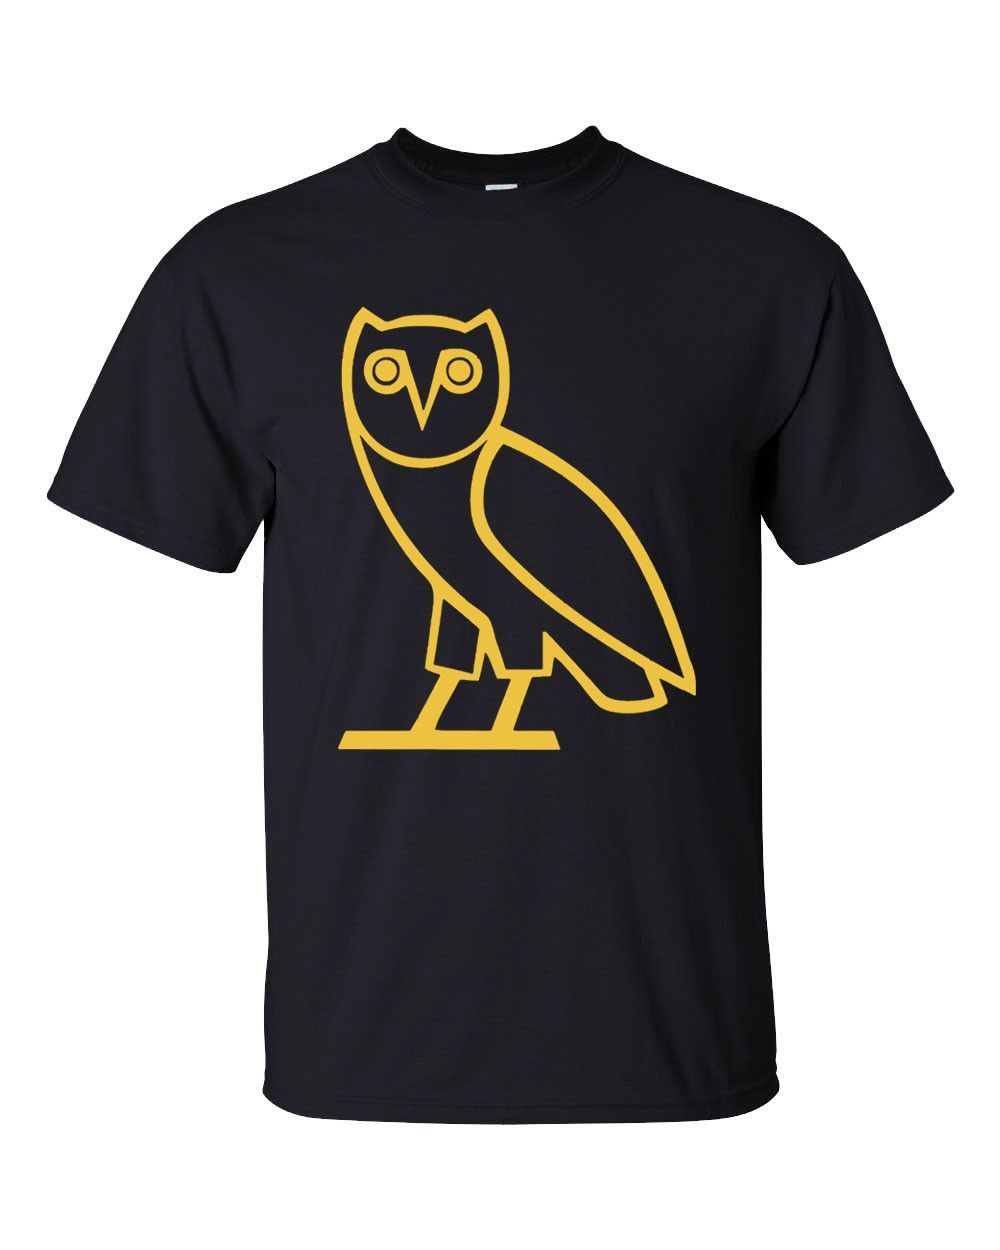 heiß Ovo Drake October's Ovoxo Very Own Owl Gang Hip Hop